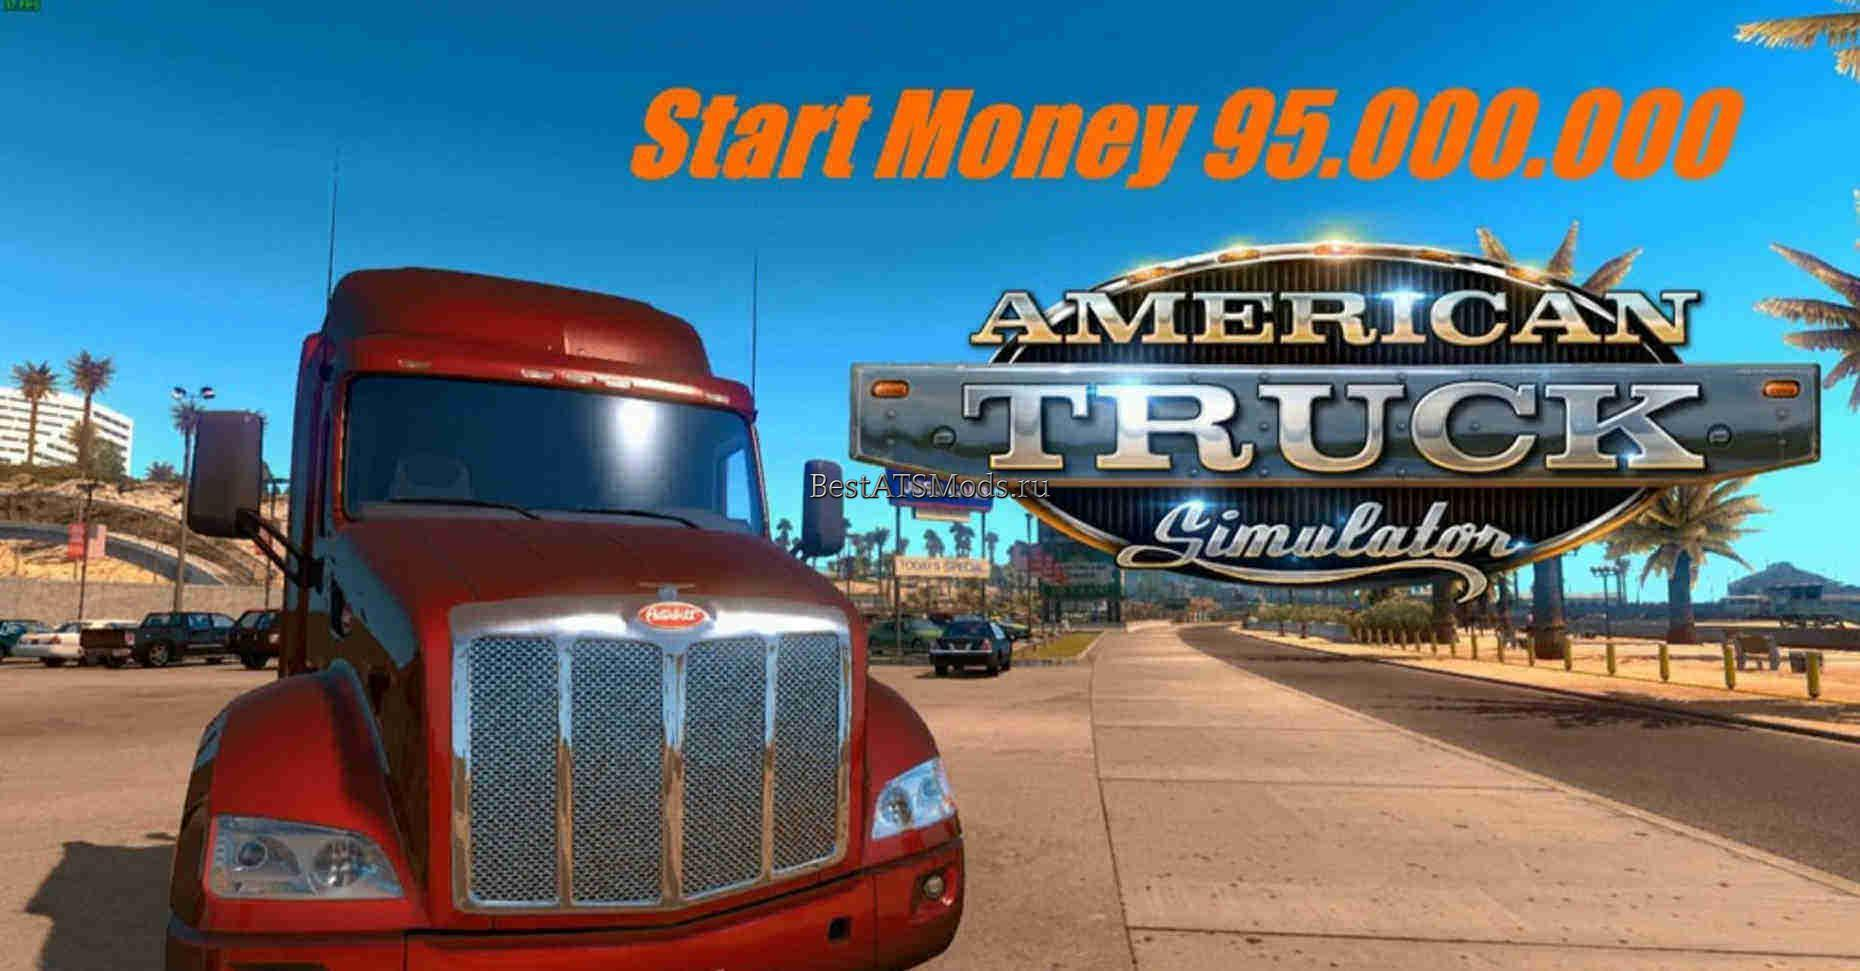 rsz_Мод_стартовый_капитал_start_money_95000000_for_american_truck_simulator